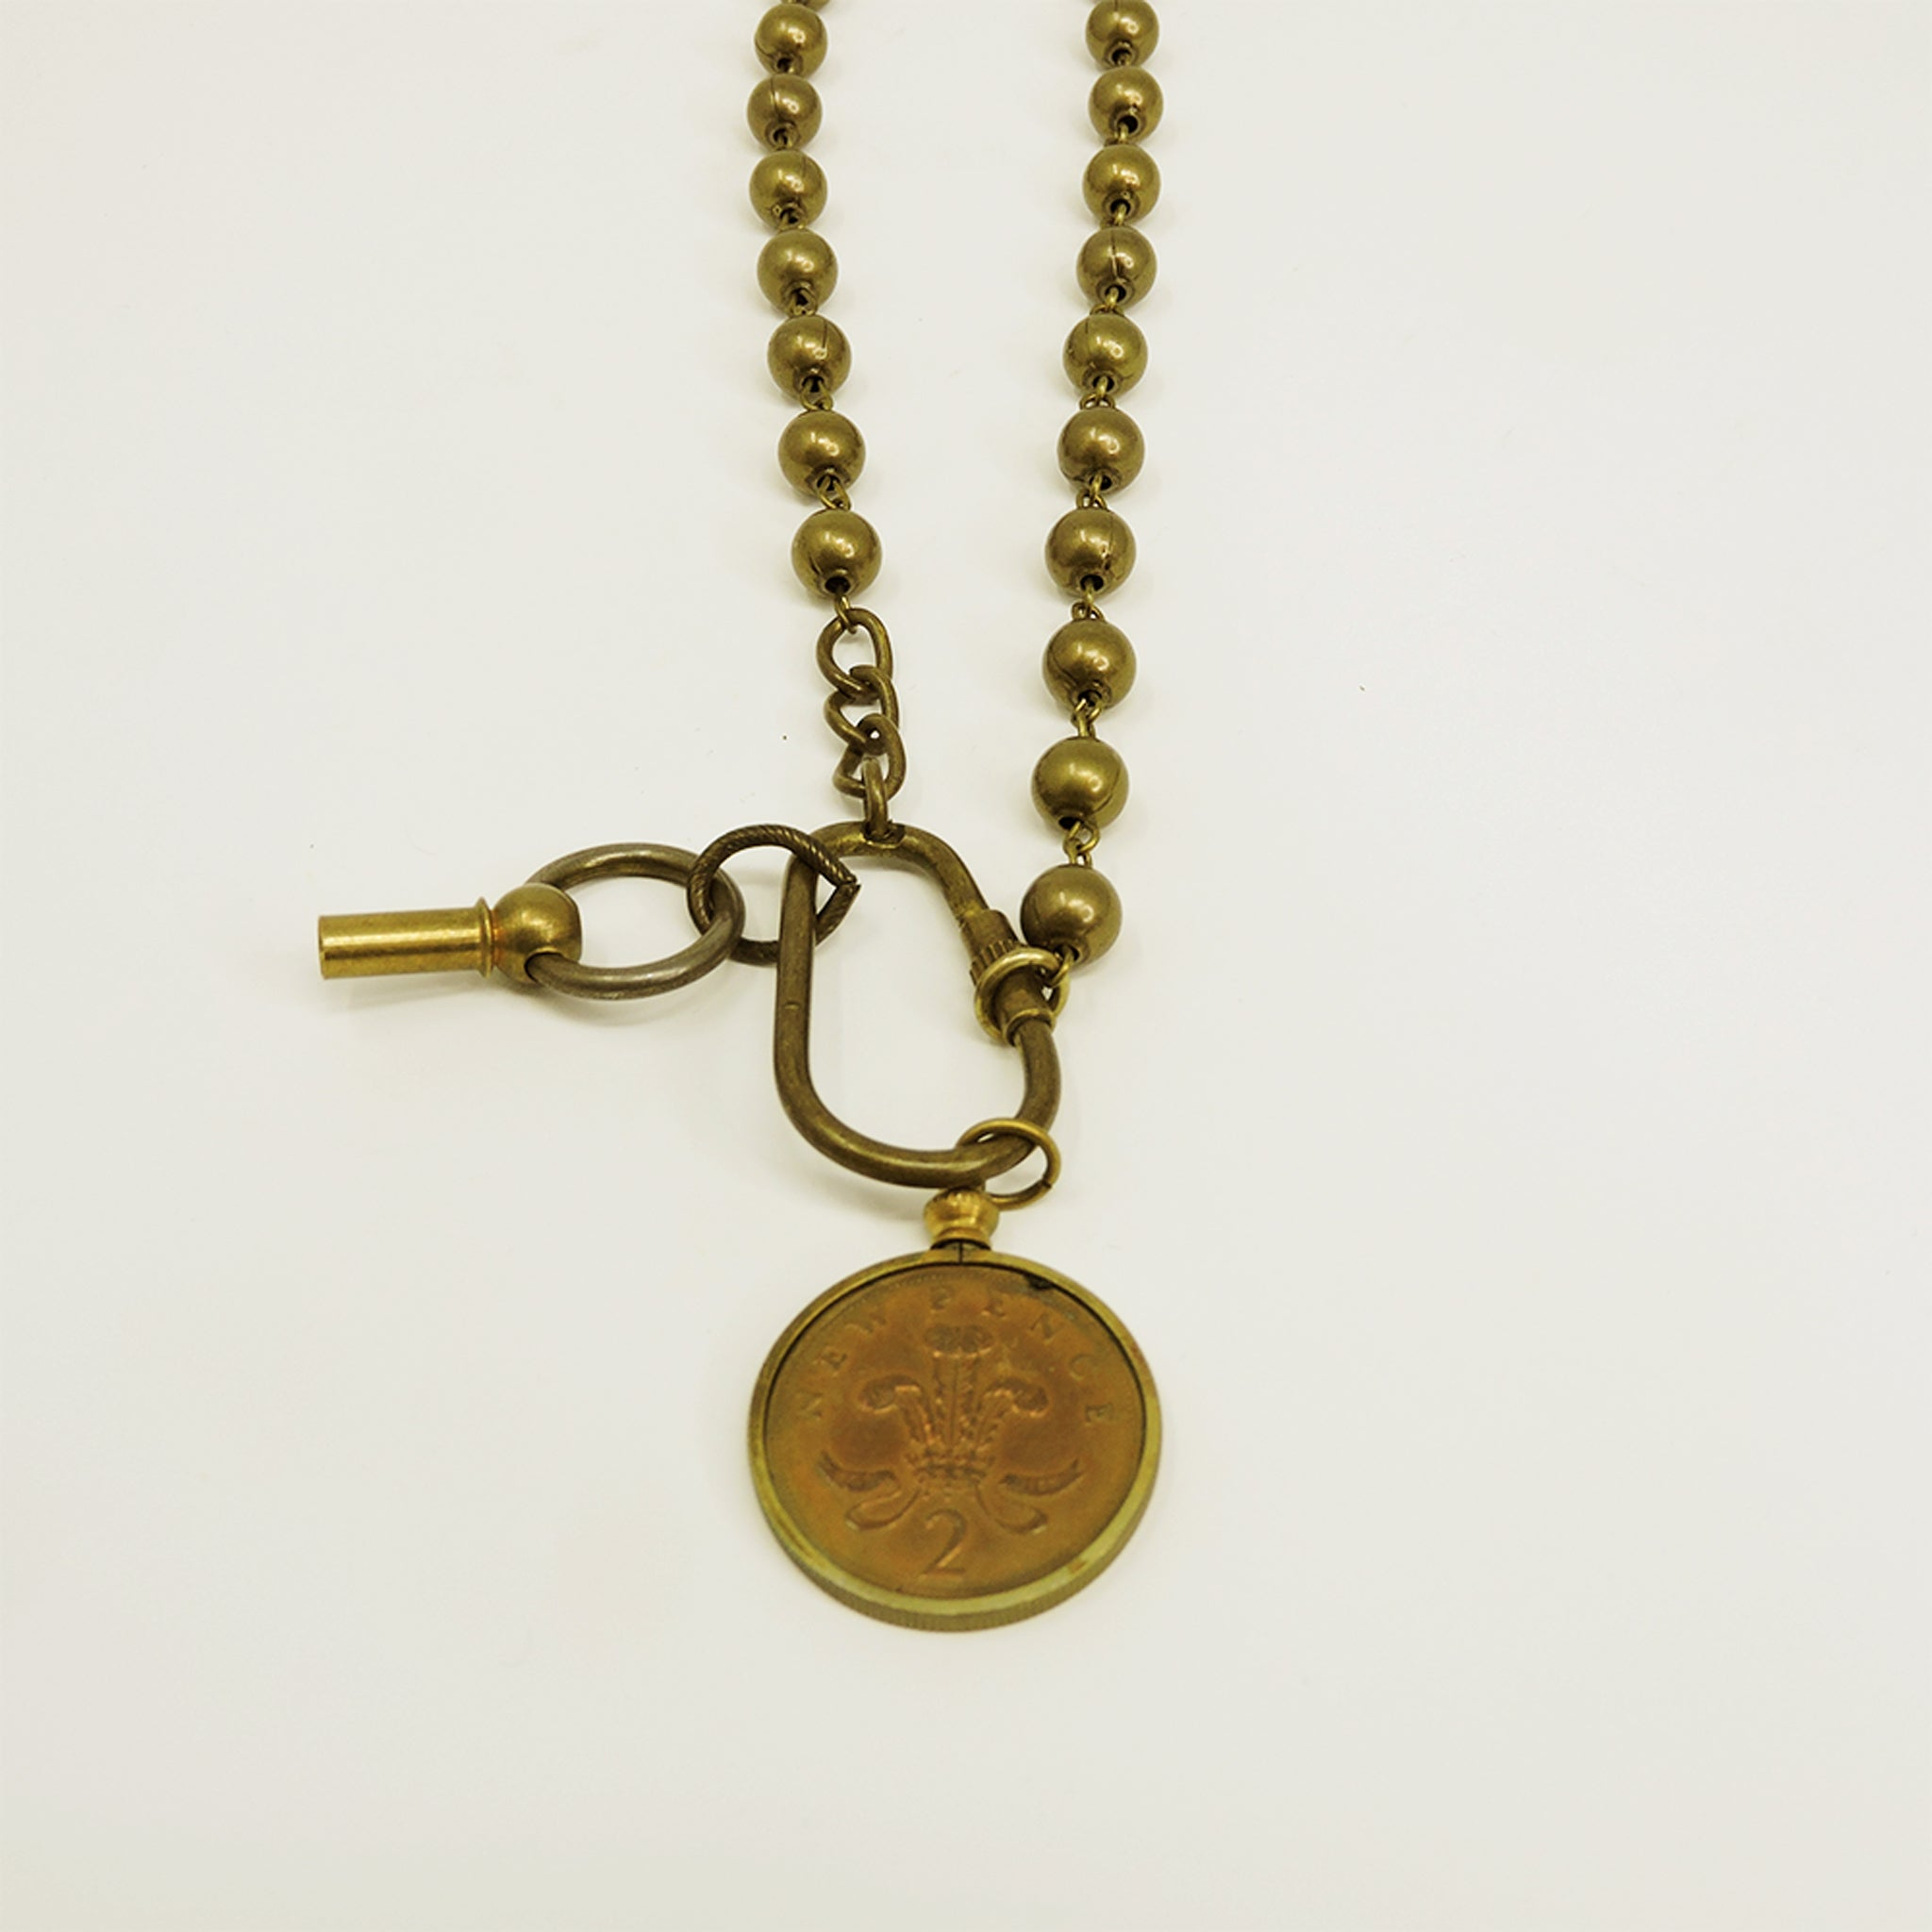 Vintage Copper Coin Necklace - Blackbird General Store